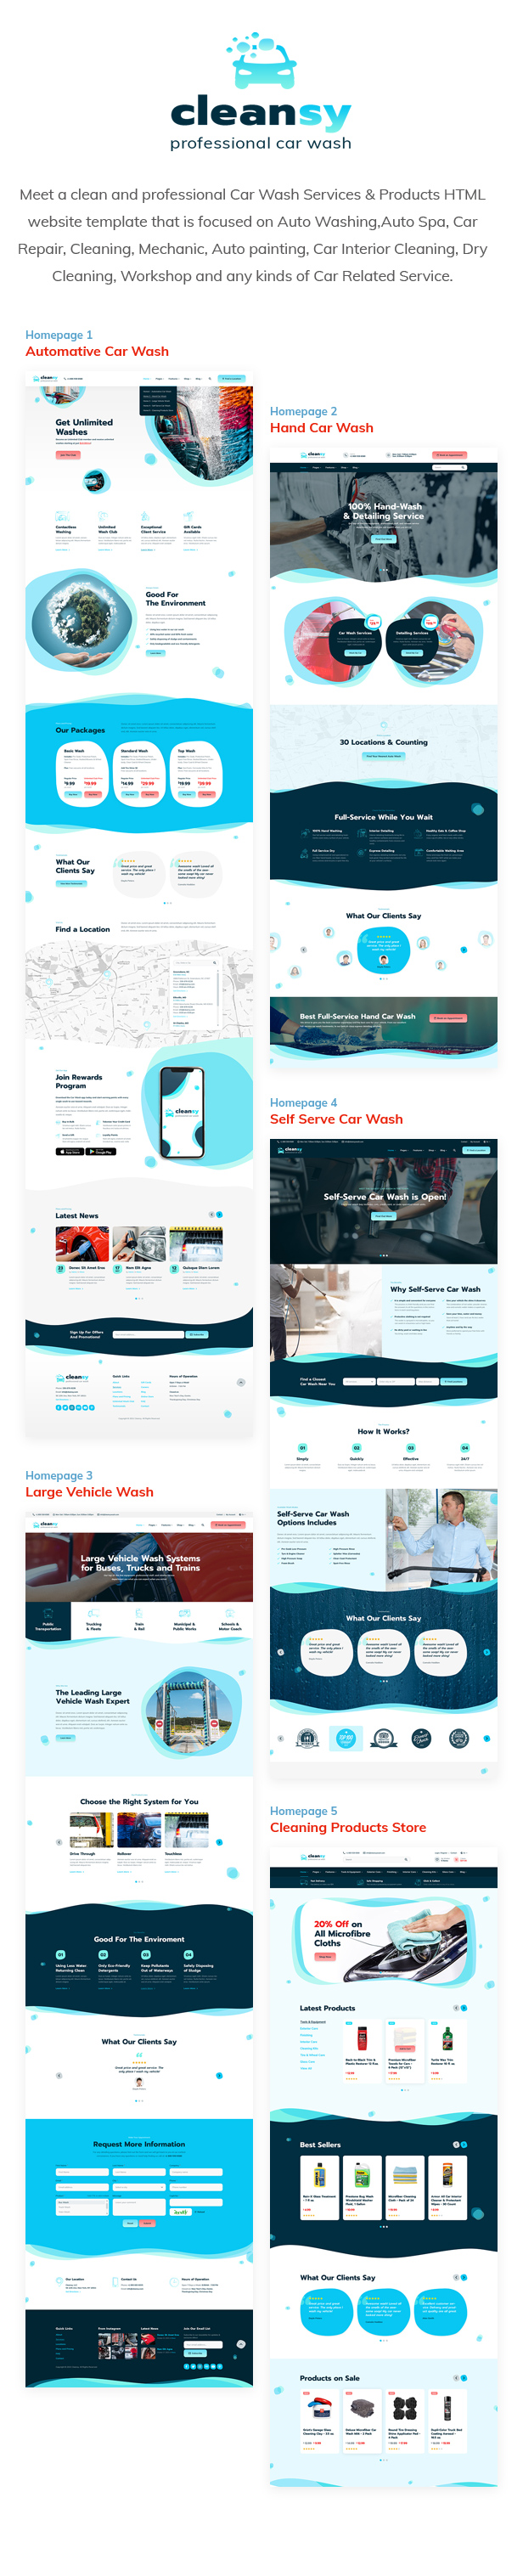 Cleansy - Car Wash Services & Products HTML Template - 1